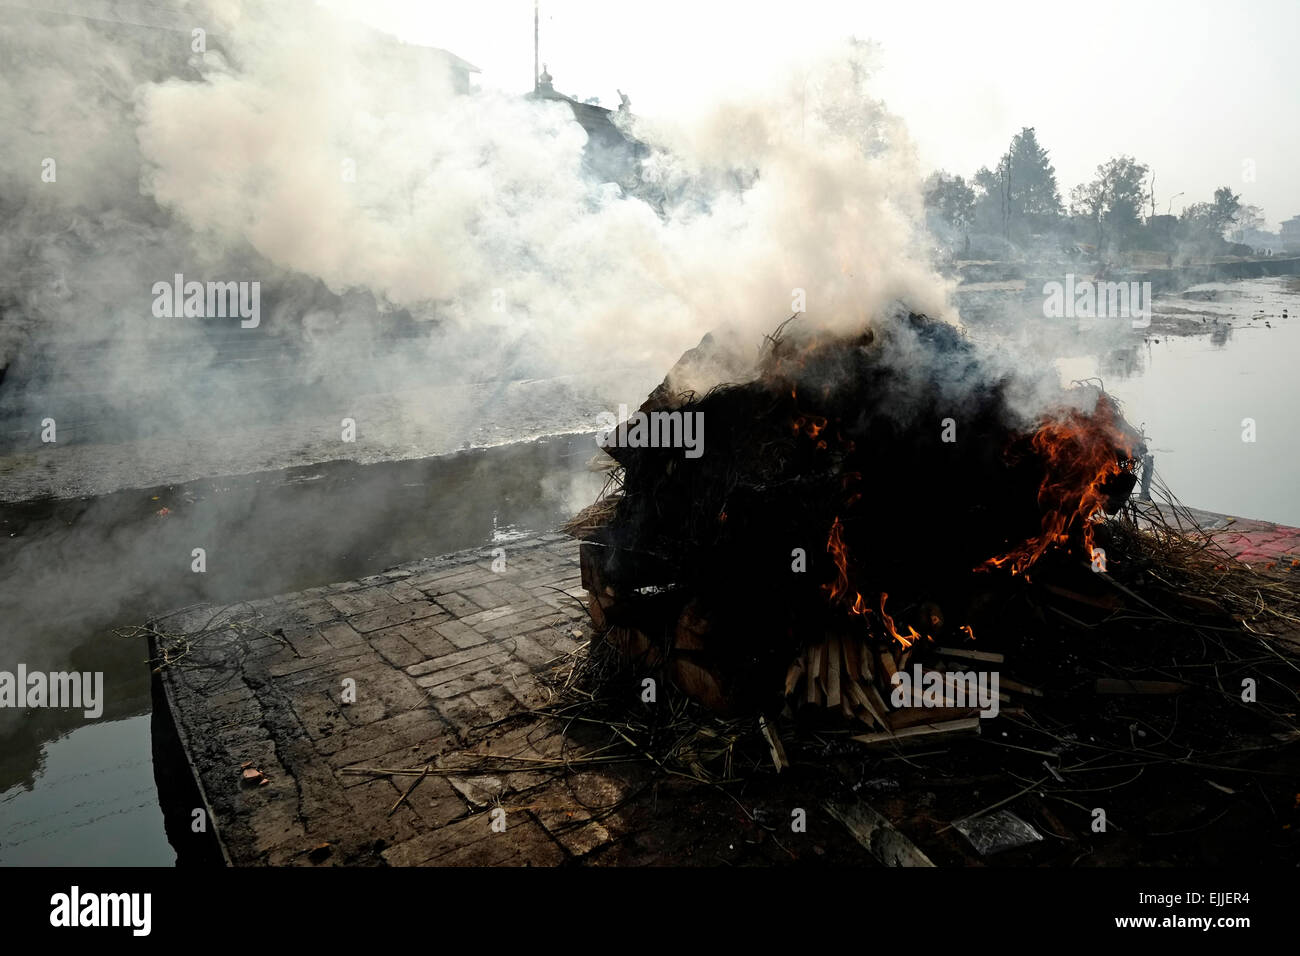 Cremation of dead people taking place at Pashupatinath Temple a Hindu shrine and one of the greatest Shiva sites - Stock Image